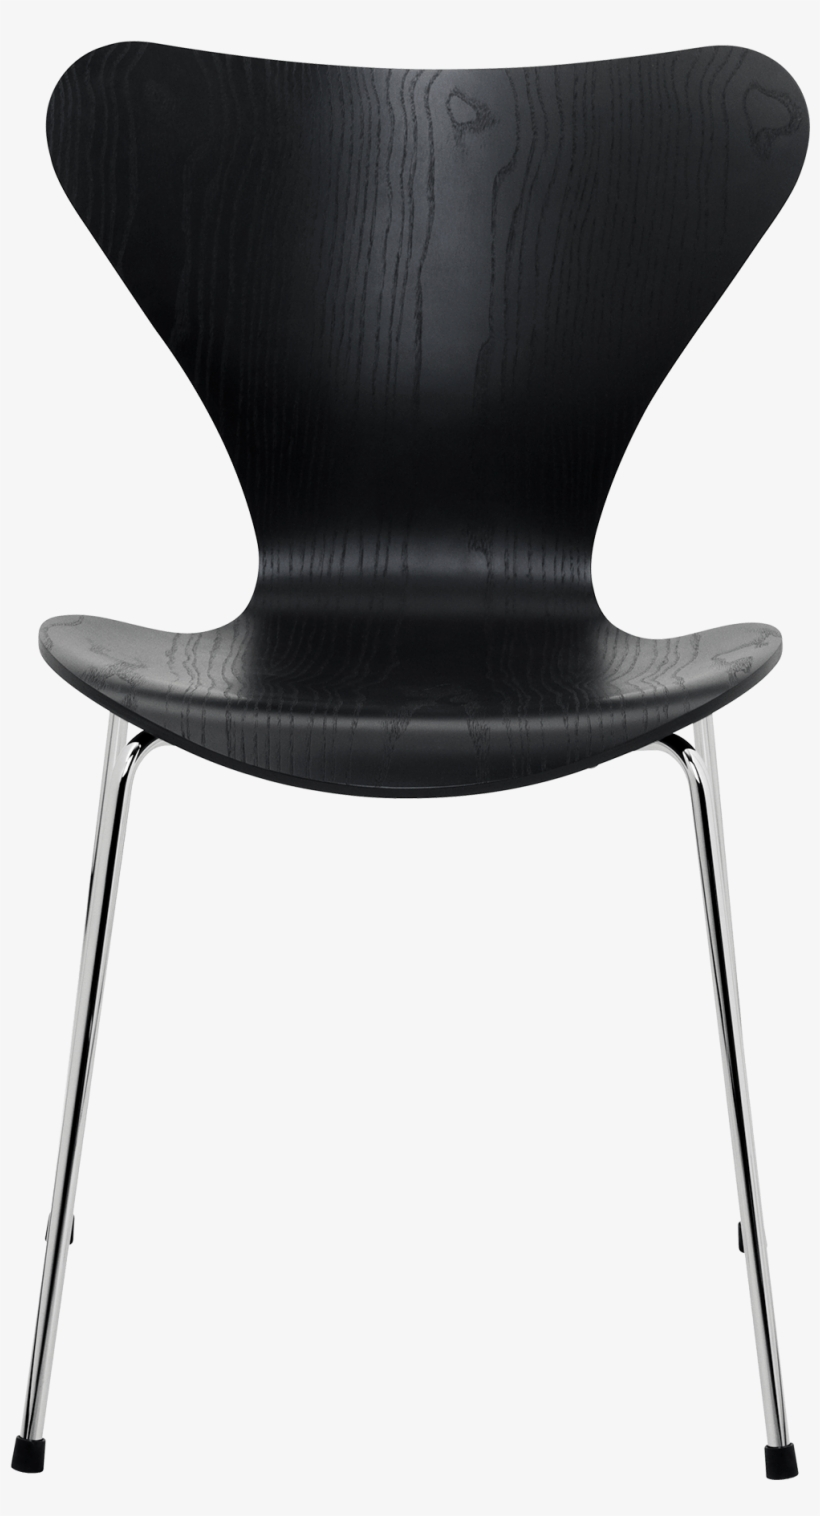 Series 7 Chair Arne Jacobsen Coloured Ash Black - Fritz Hansen Series 7 Chair By Arne Jacobsen, transparent png #61536